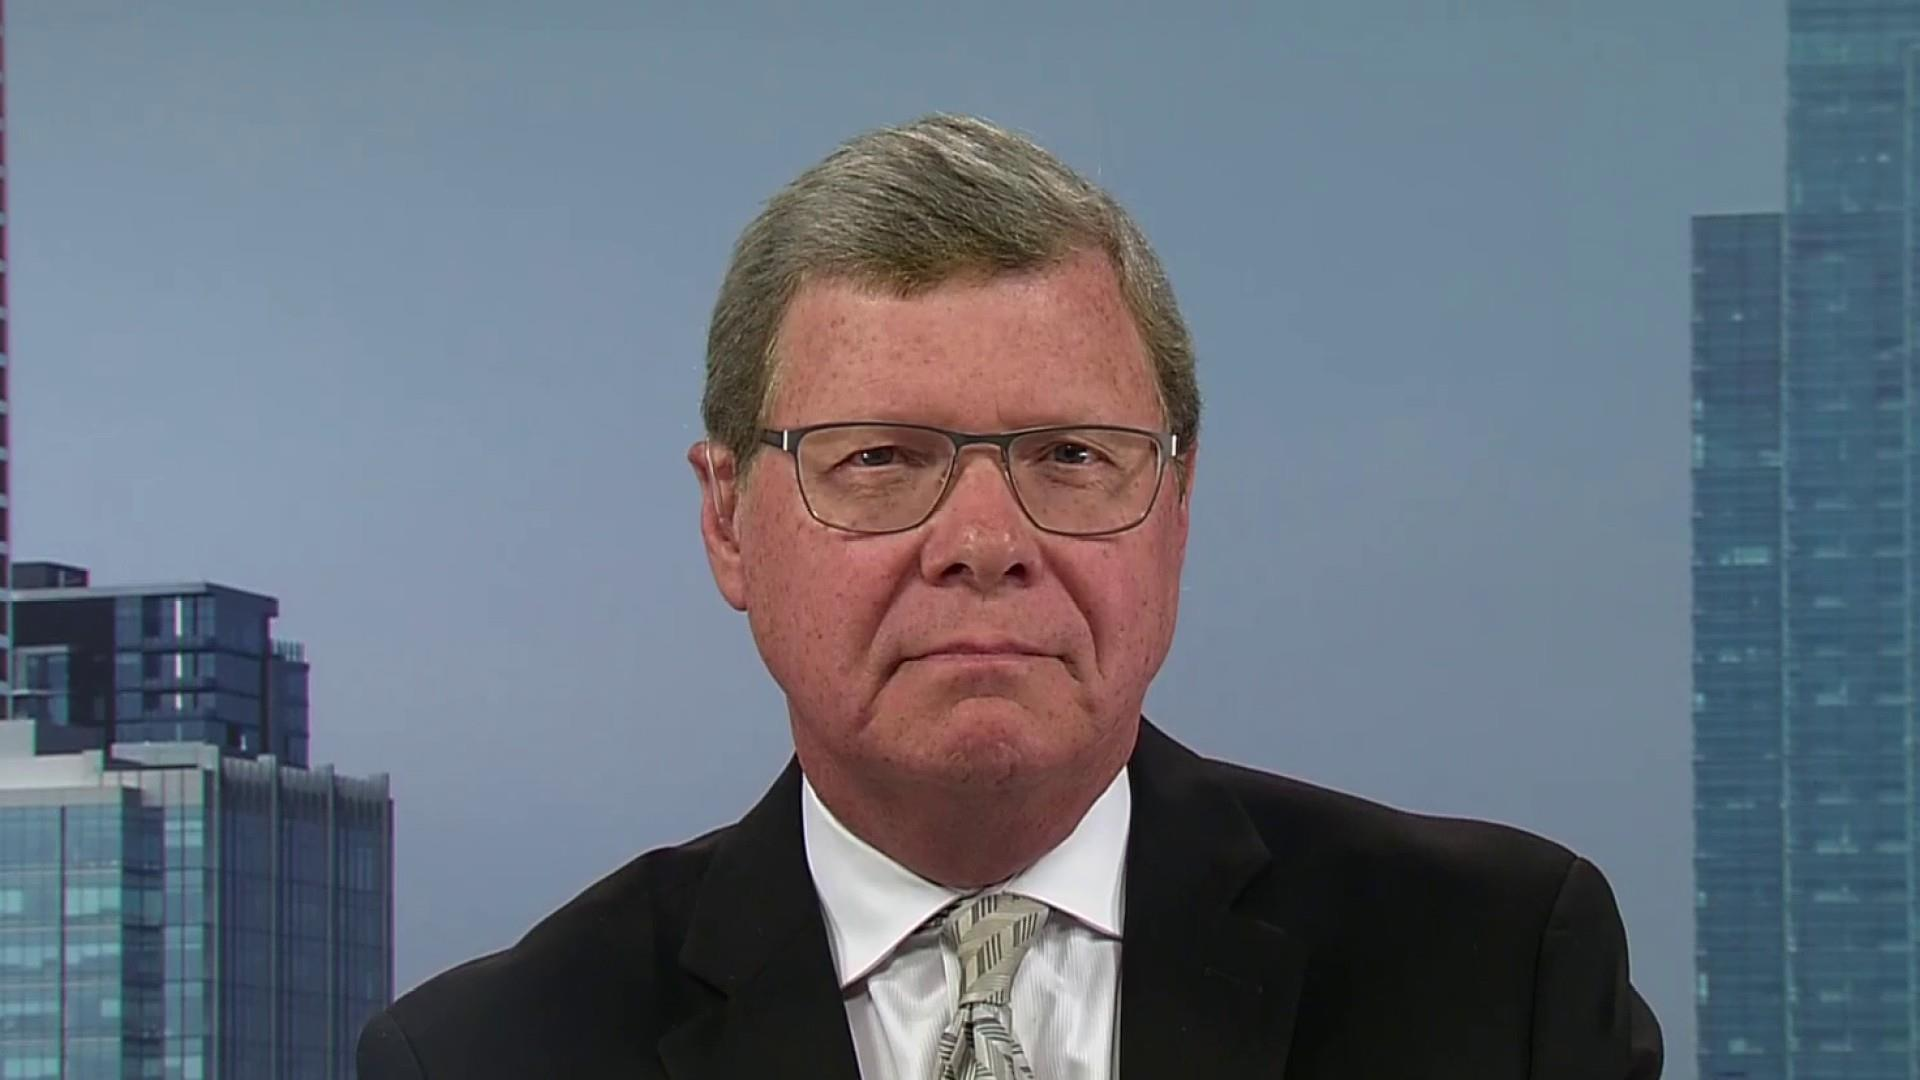 Charlie Sykes: This is a moment for moral leadership